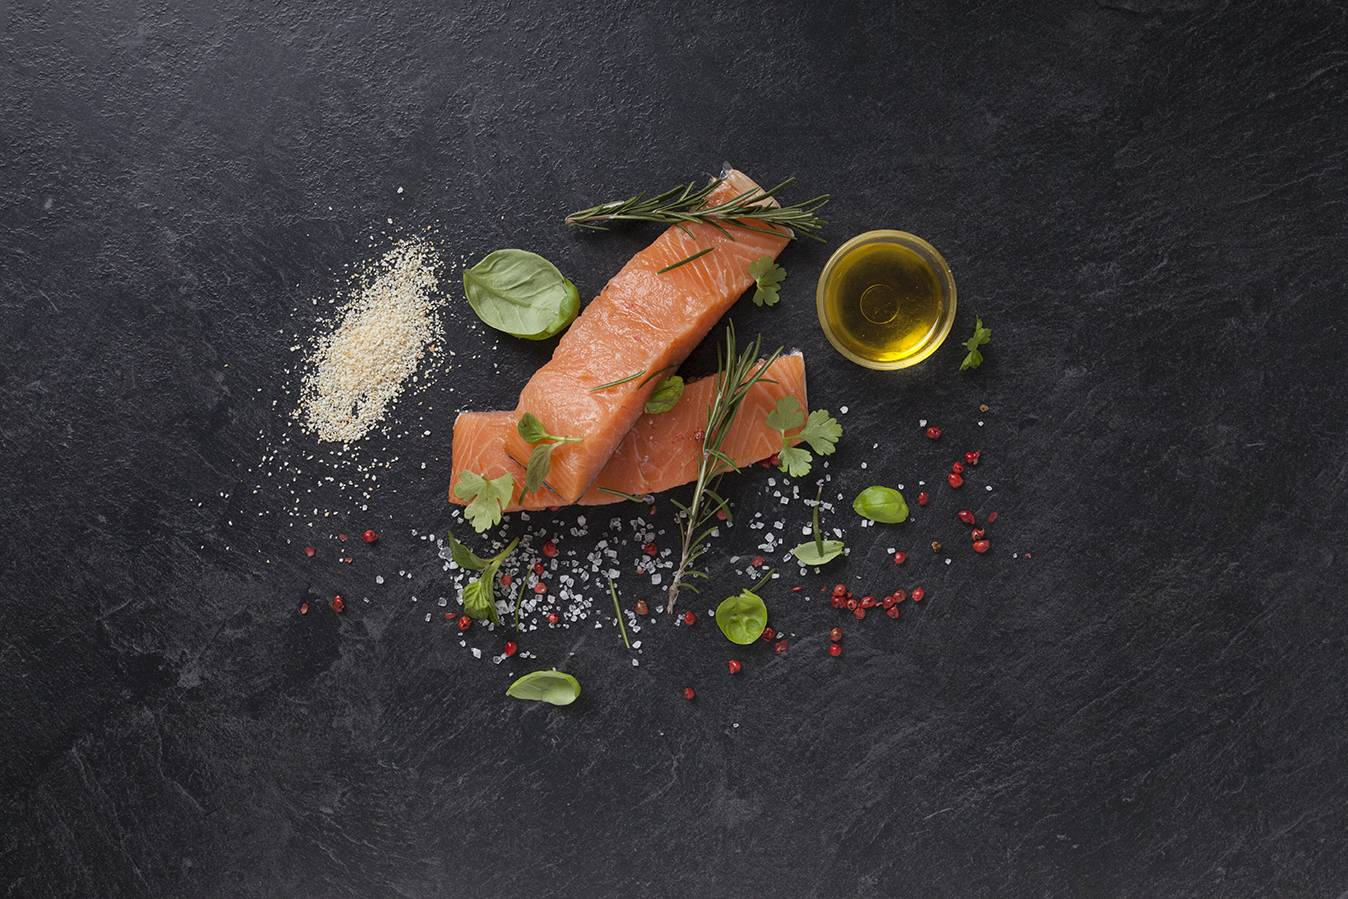 Ingredients - Grilled salmon with herby breadcrumbs